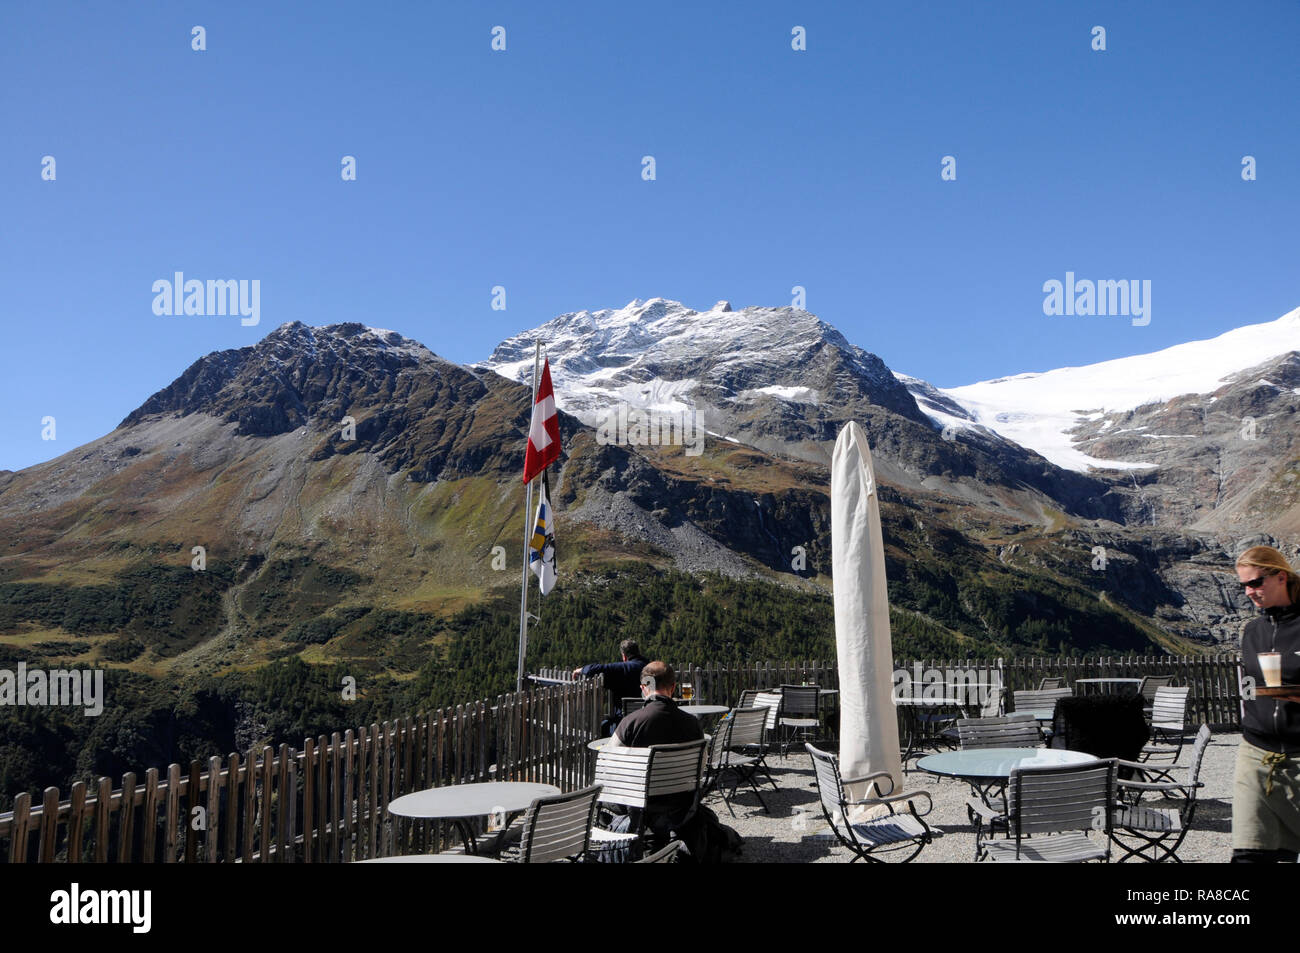 Mountain-Restaurant on top of Alp Grüm with perfect view to Posciavo. - Stock Image